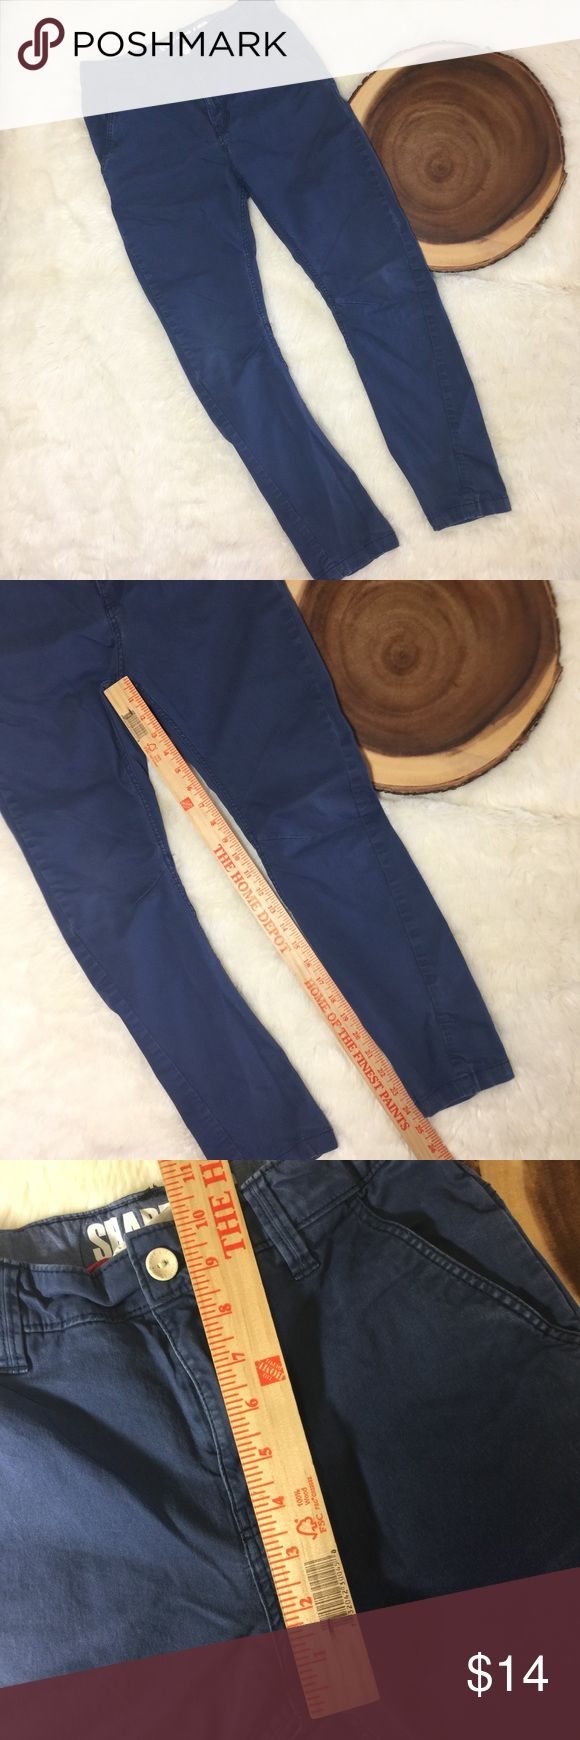 """H&M navy Prep Shaped Leg Skinny Chinos Adjustable waist 24.5"""" crotch to bottom(inseam) 10"""" rise All items photographed immediately prior to packing for shipping   Expect to receive a well-packed item! It may not be pretty packing but I like to use upcycled material & make sure it gets to you without being affected by the elements for you to enjoy asap! Bottoms Casual"""